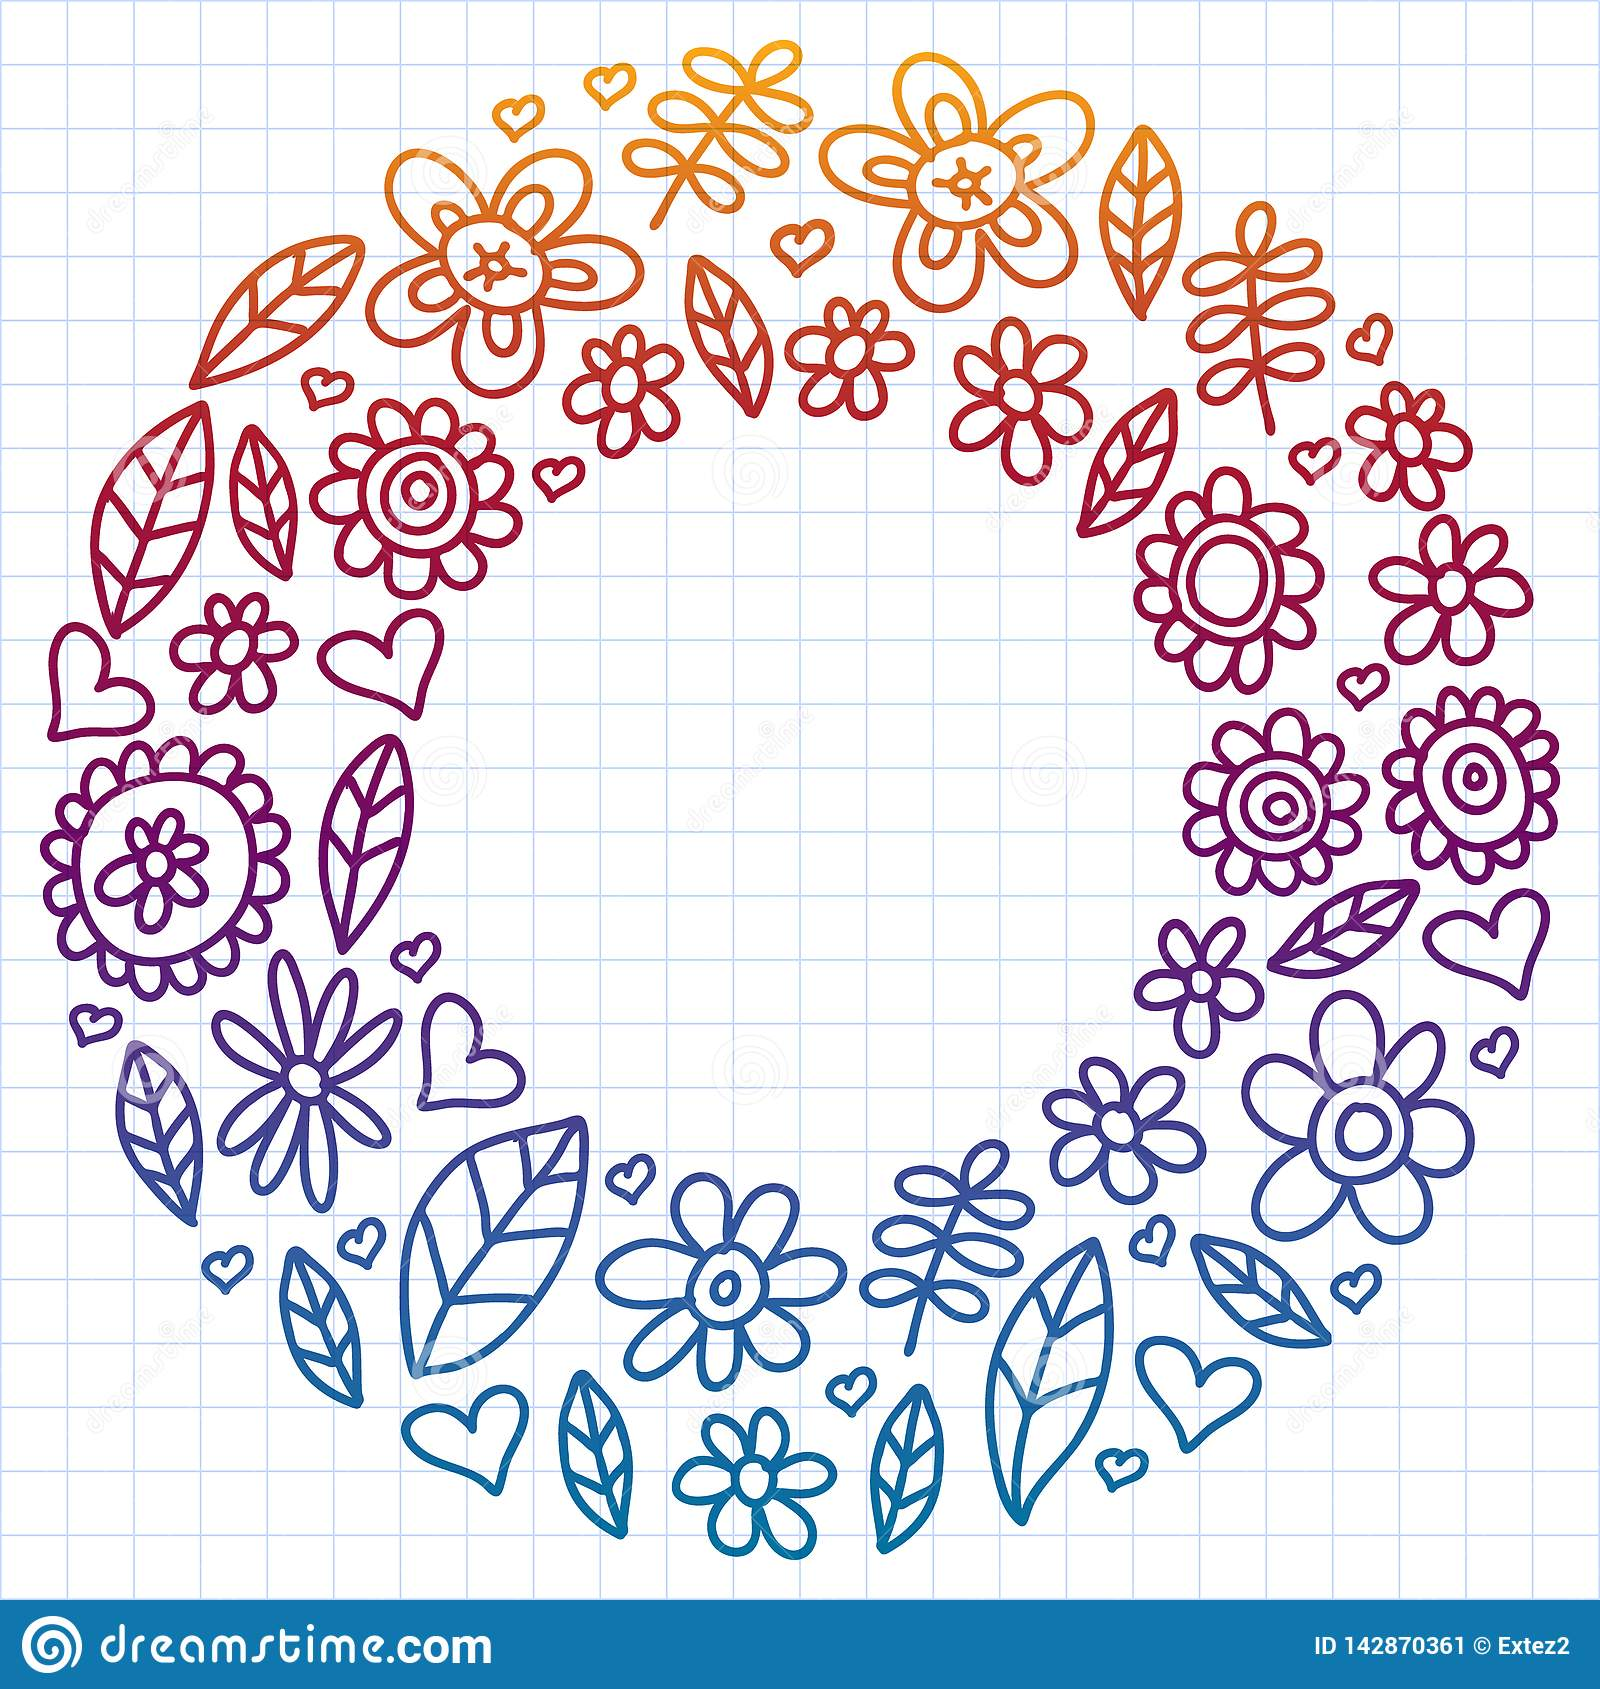 Vector set of child drawing flowers icons in doodle style. Painted, colorful, gradient, on a sheet of checkered paper on a white